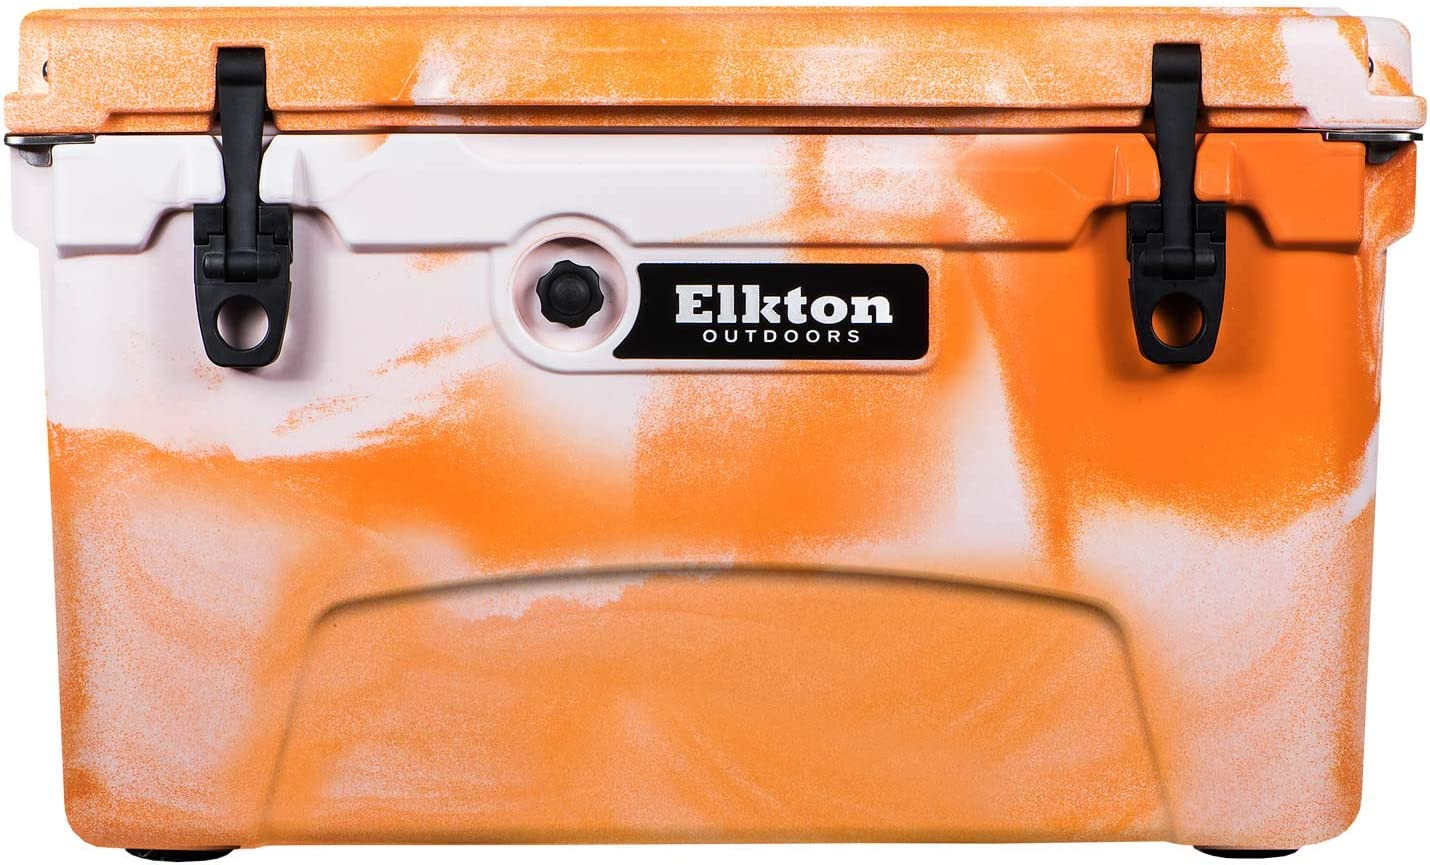 Elkton Outdoors Ice Chest. Heavy Duty, High Performance Roto-Molded Commercial Grade Insulated Cooler, 45-Quart